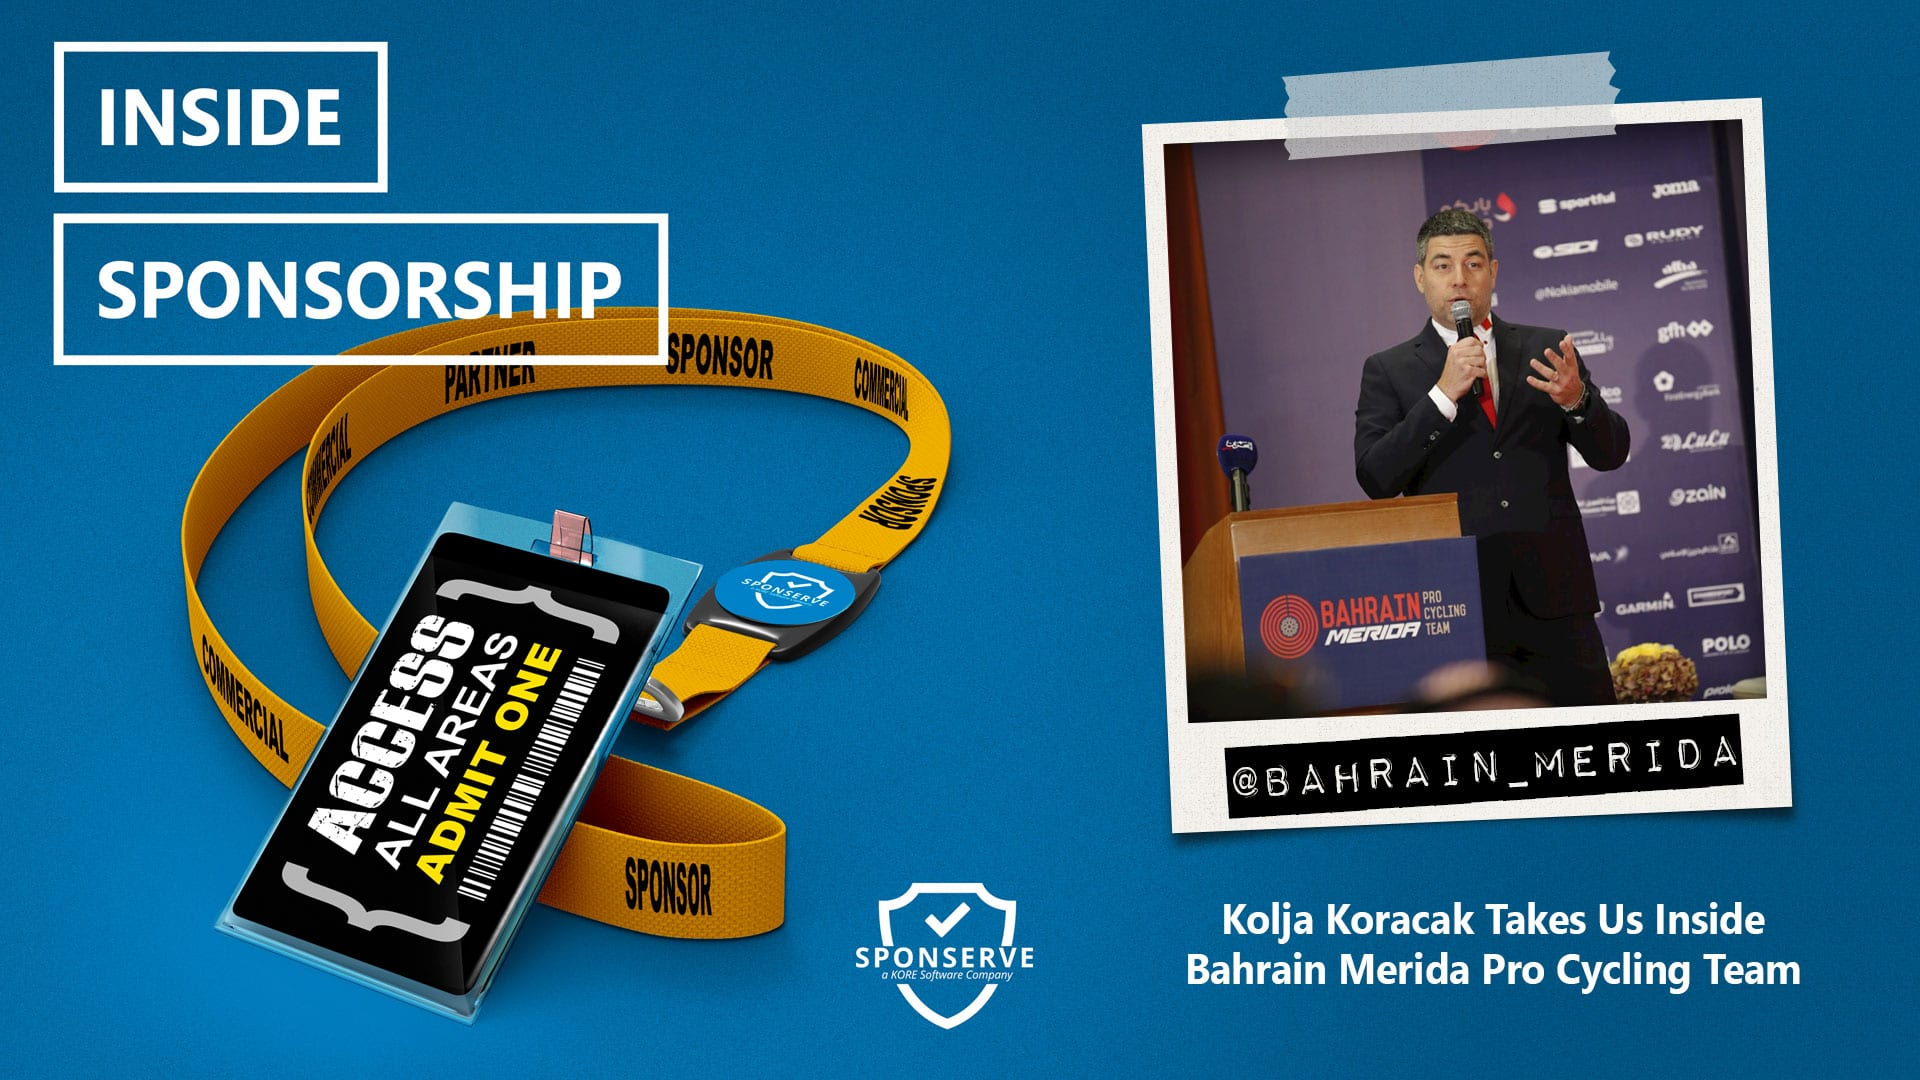 Inside-Sponsorship-Bahrain-Merida-Pro-Cycling-Team-Kolja-Koracak